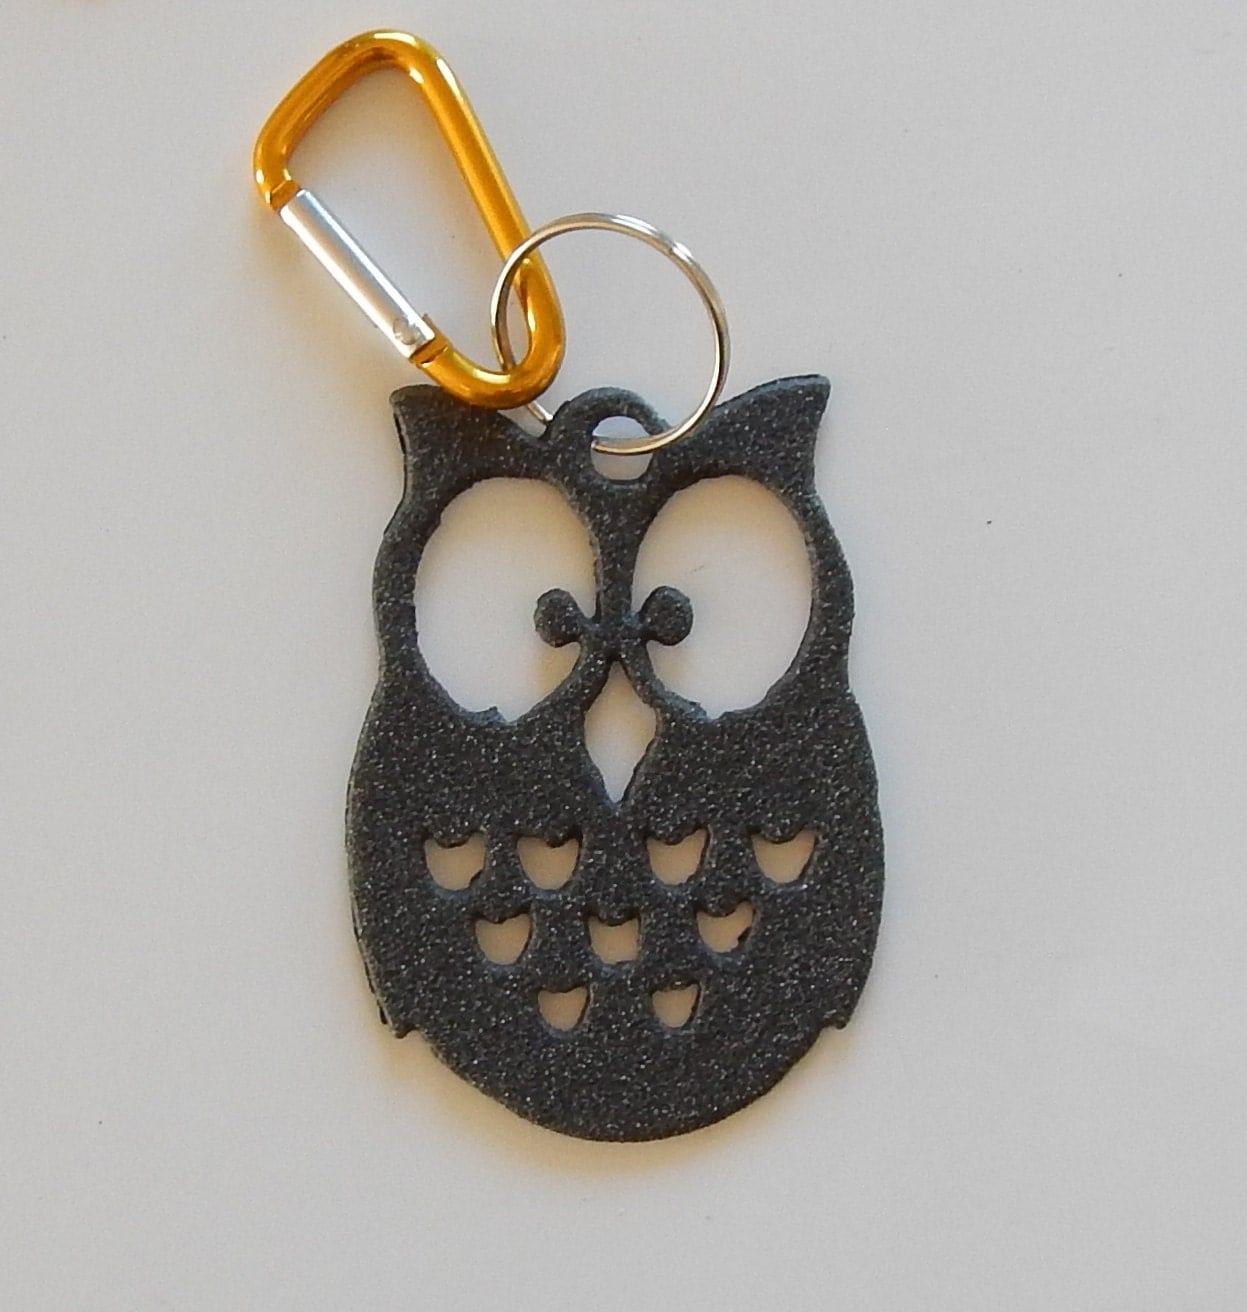 owl giftowl bag charmpurse charmowl clipmetal owlzipper pull charmback pack charmowl charmowl decoration